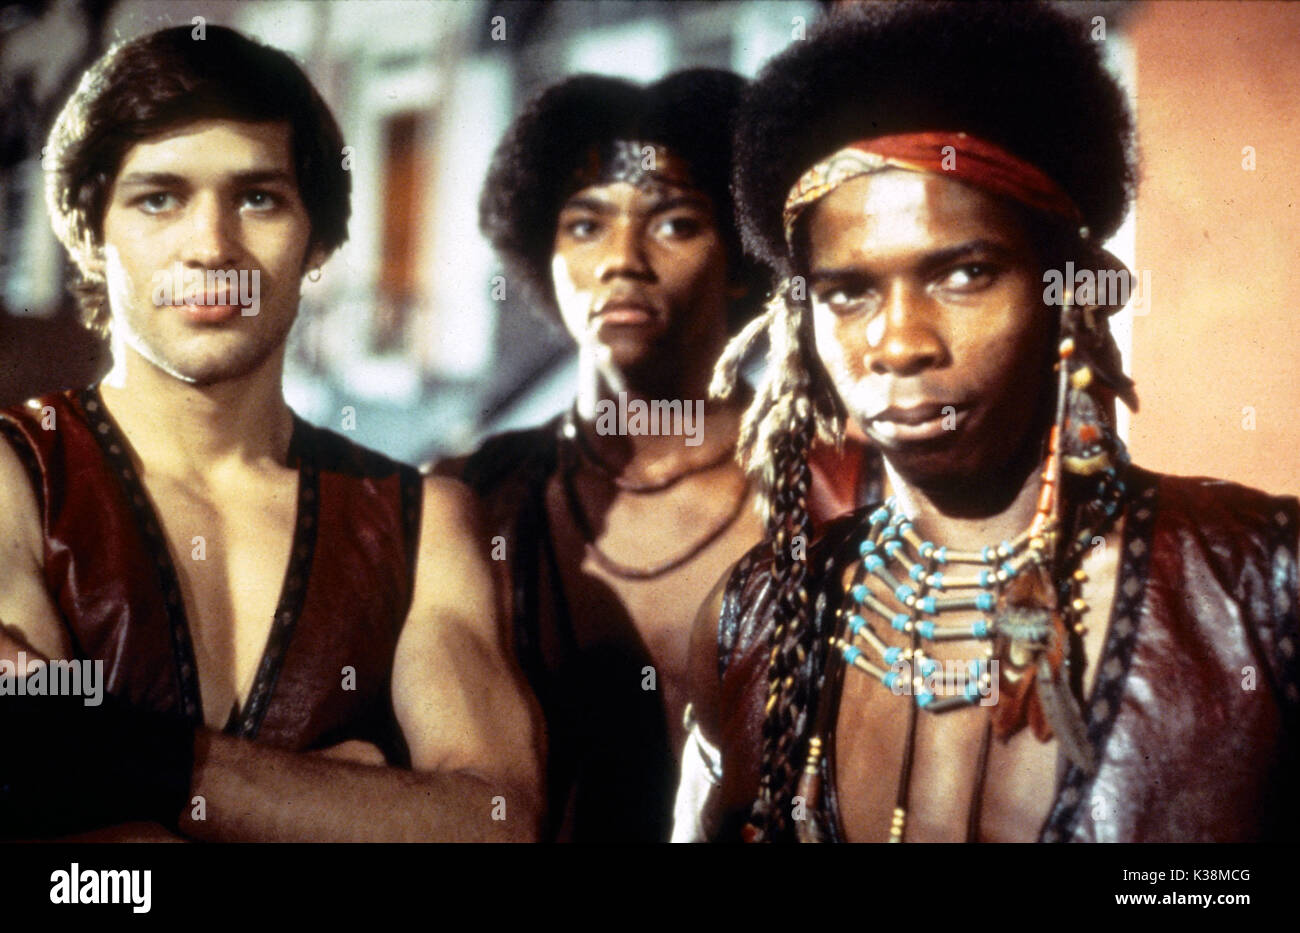 THE WARRIORS JAMES REMAR, BRIAN TYLER, DAVID HARRIS     Date: 1979 - Stock Image